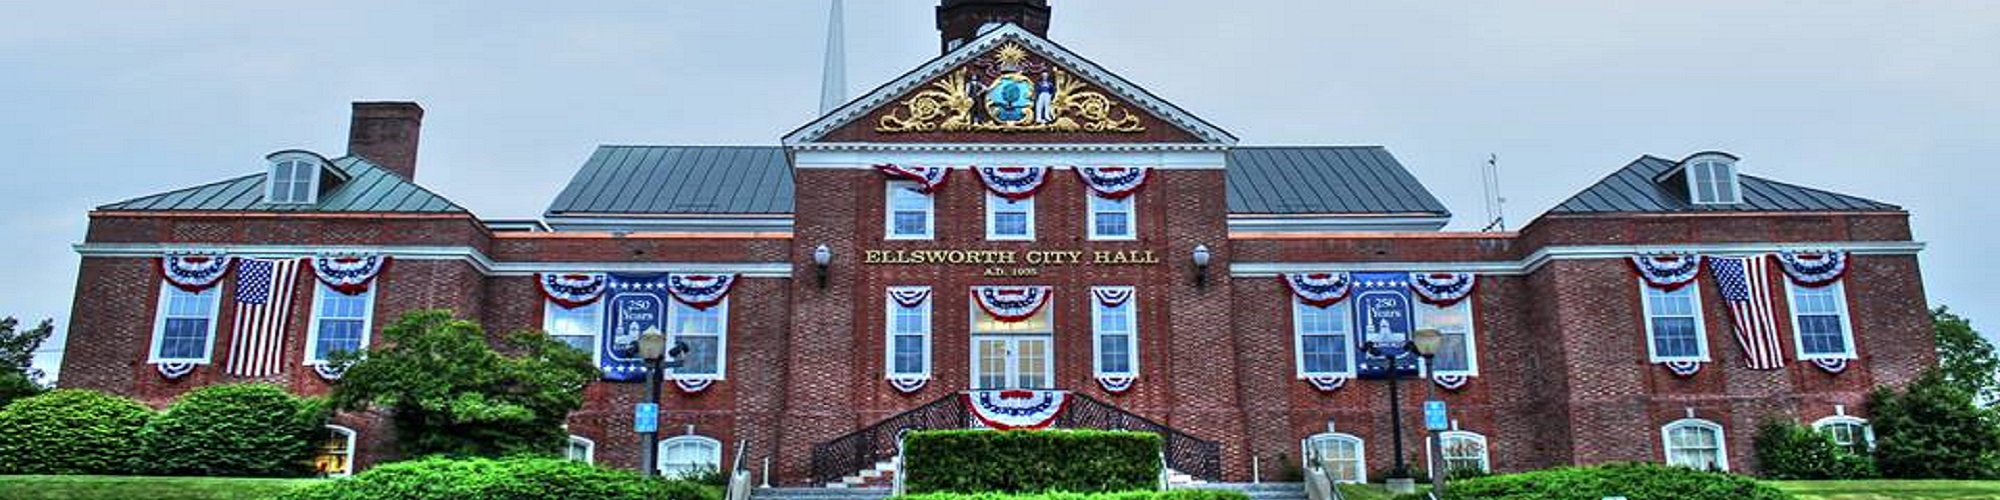 Ellsworth City Hall